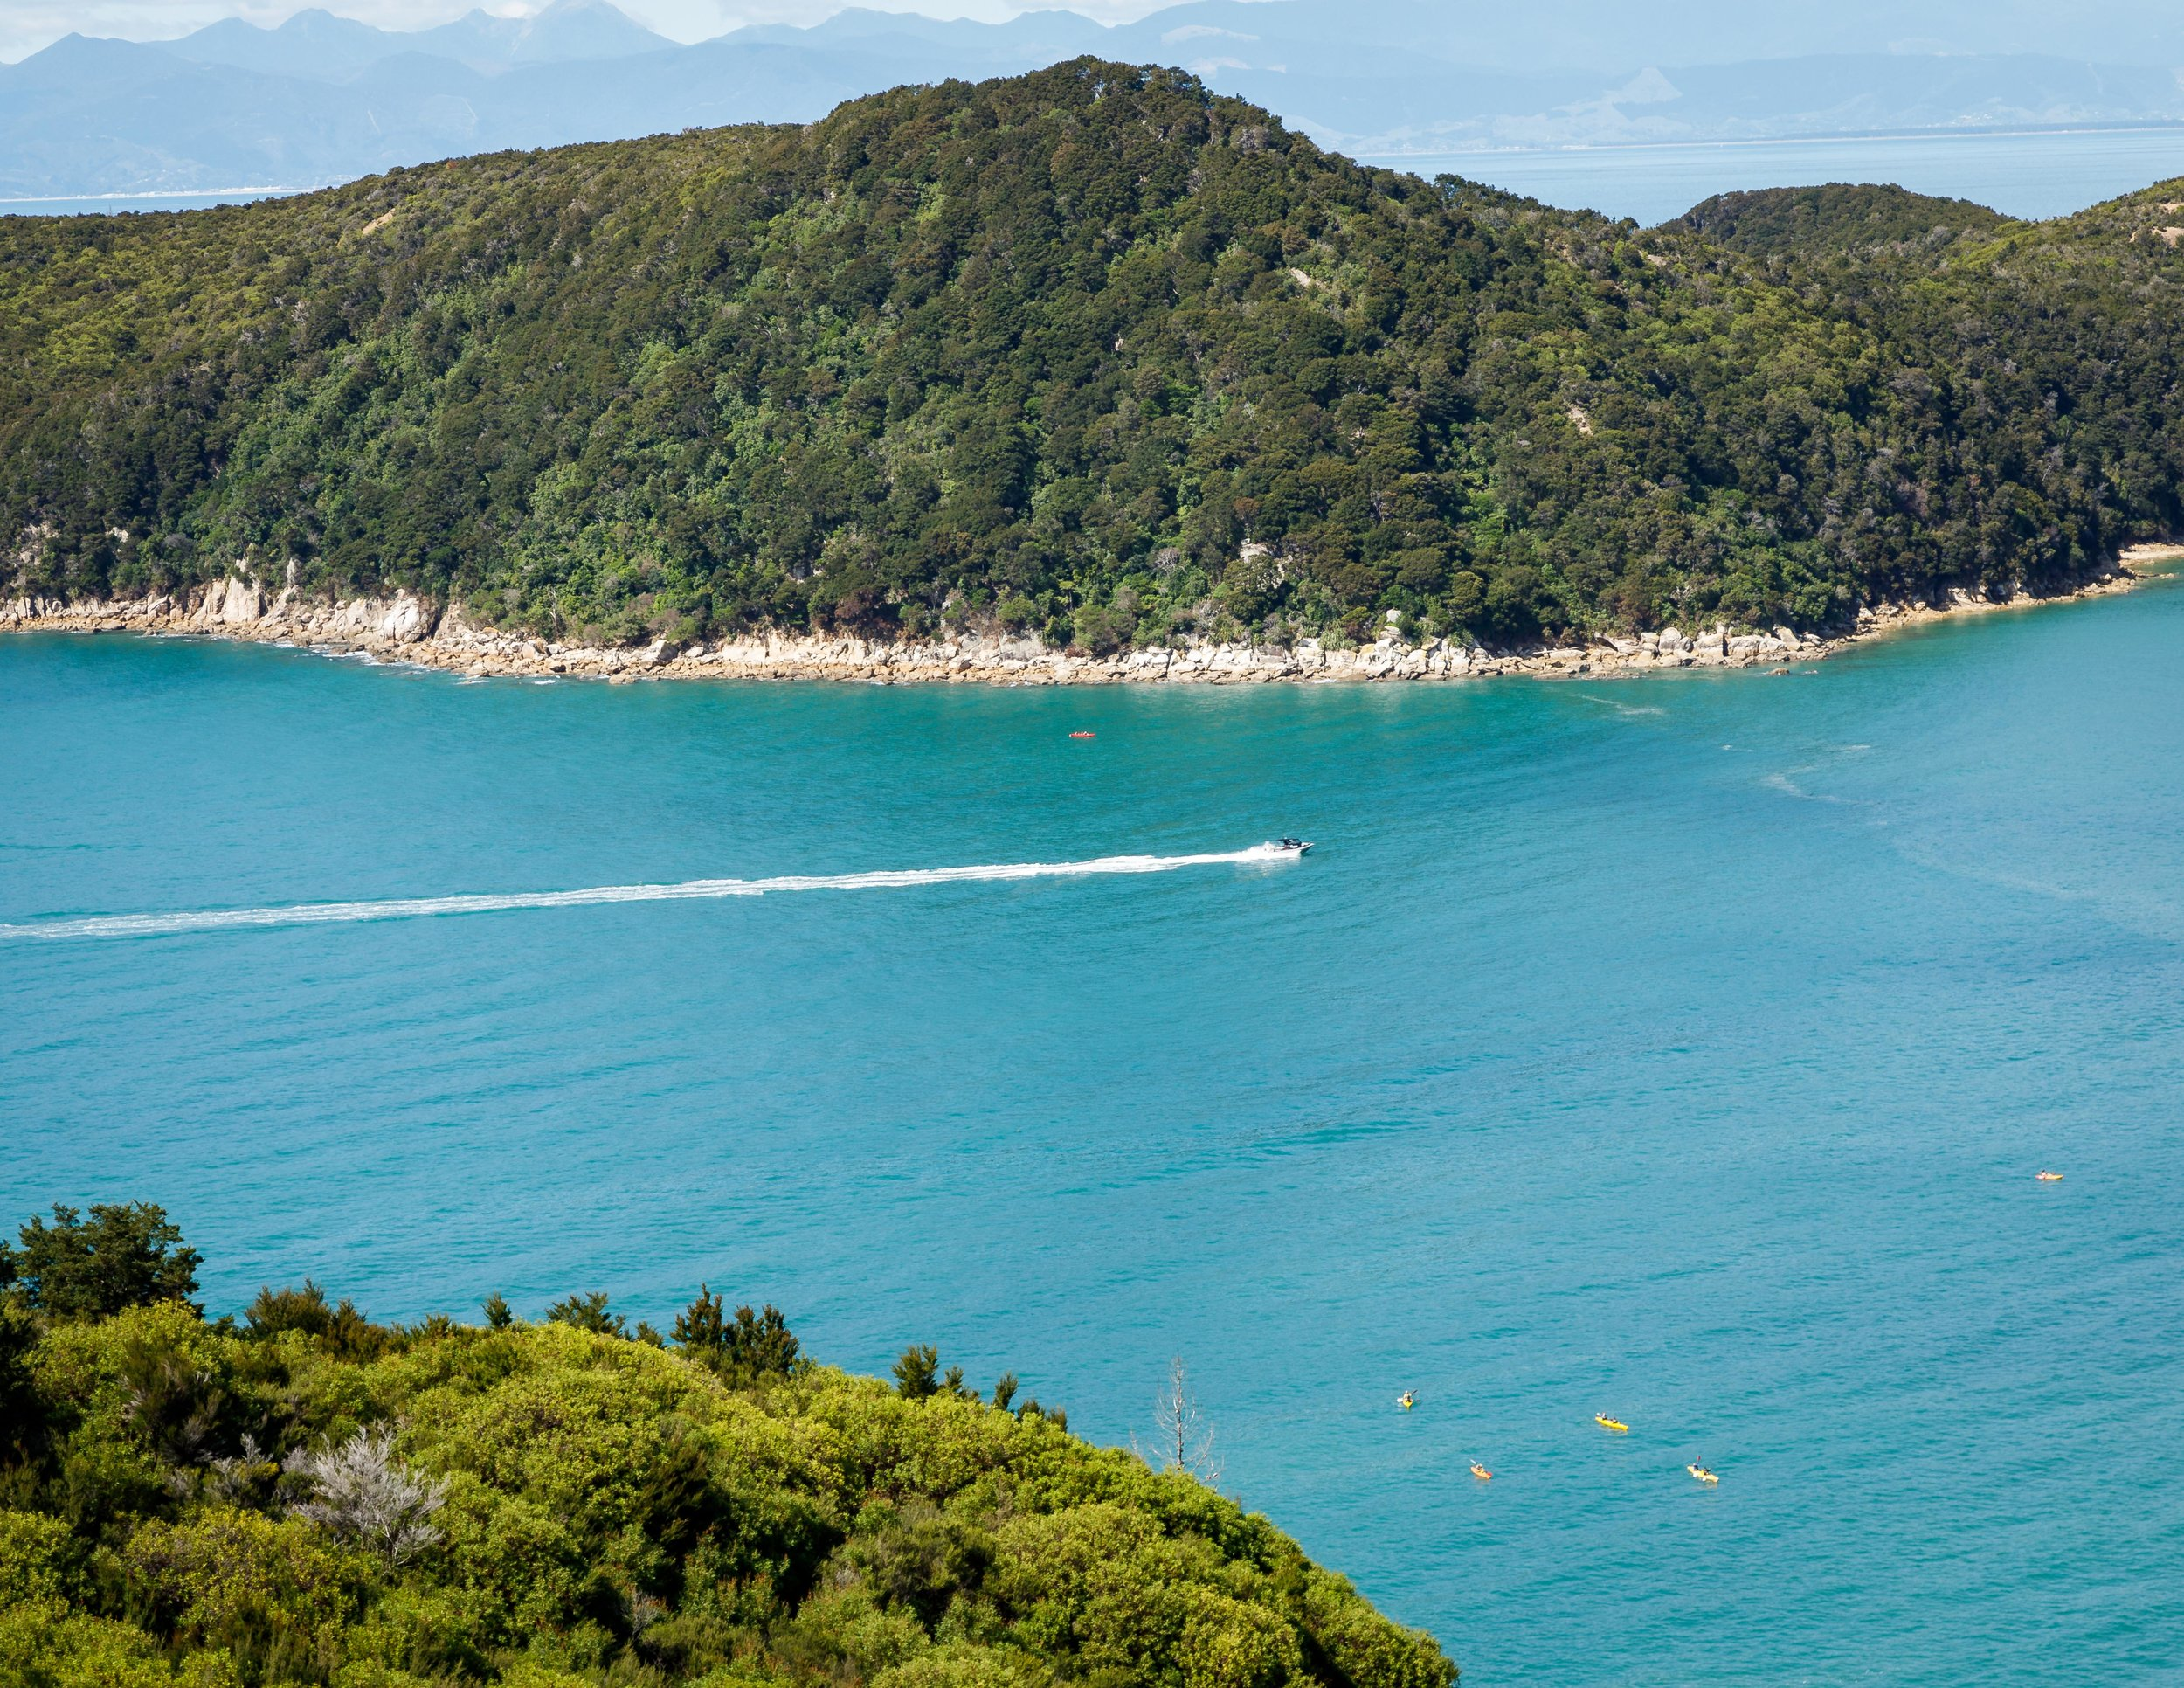 The views from near Anchorage, Abel Tasman Track